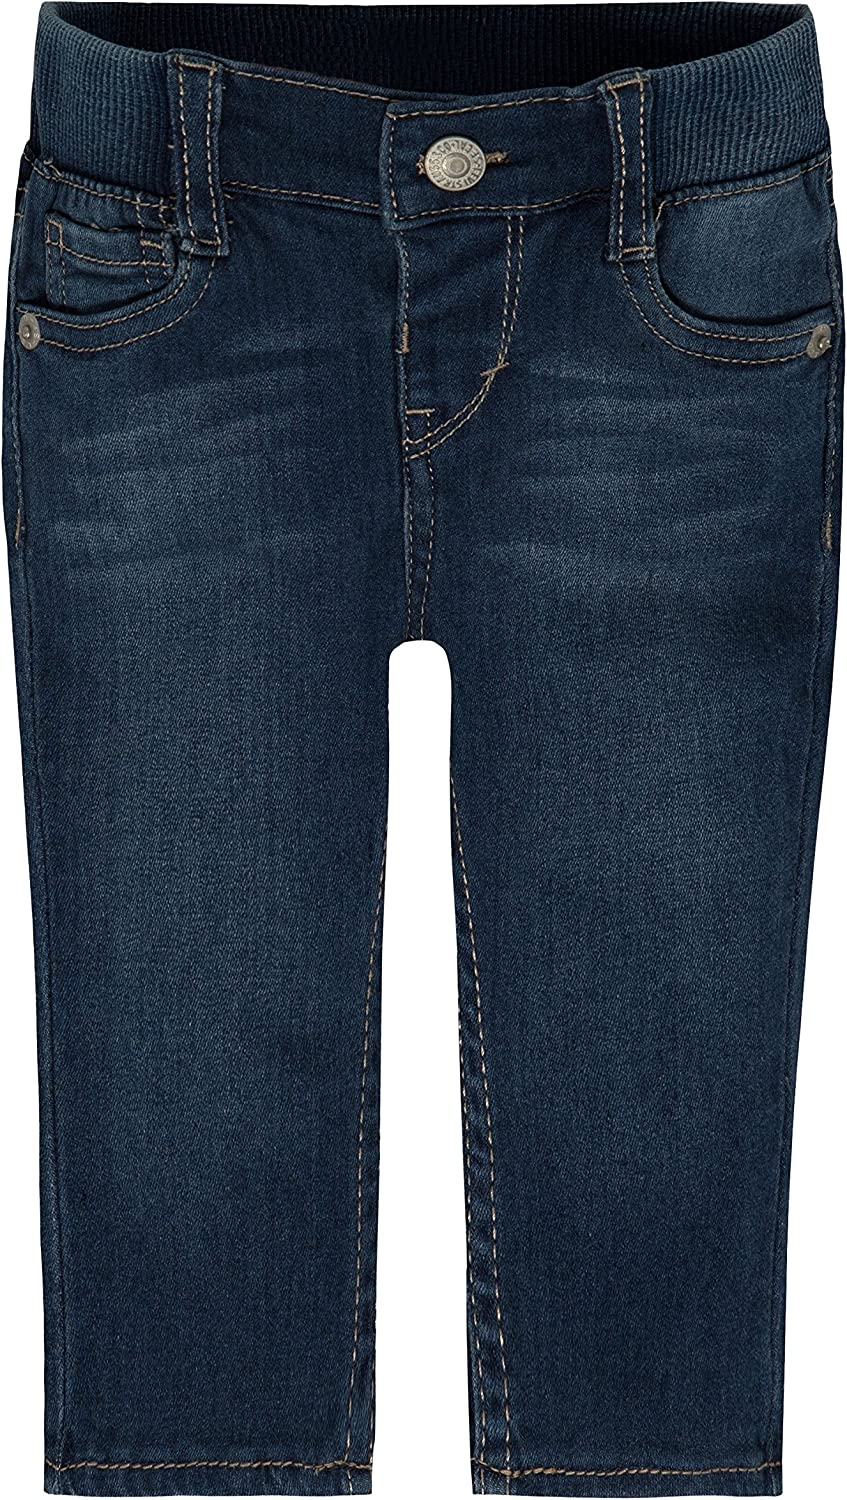 Levi's Girls' SEAL limited 2021 model product Skinny Jeans Fit